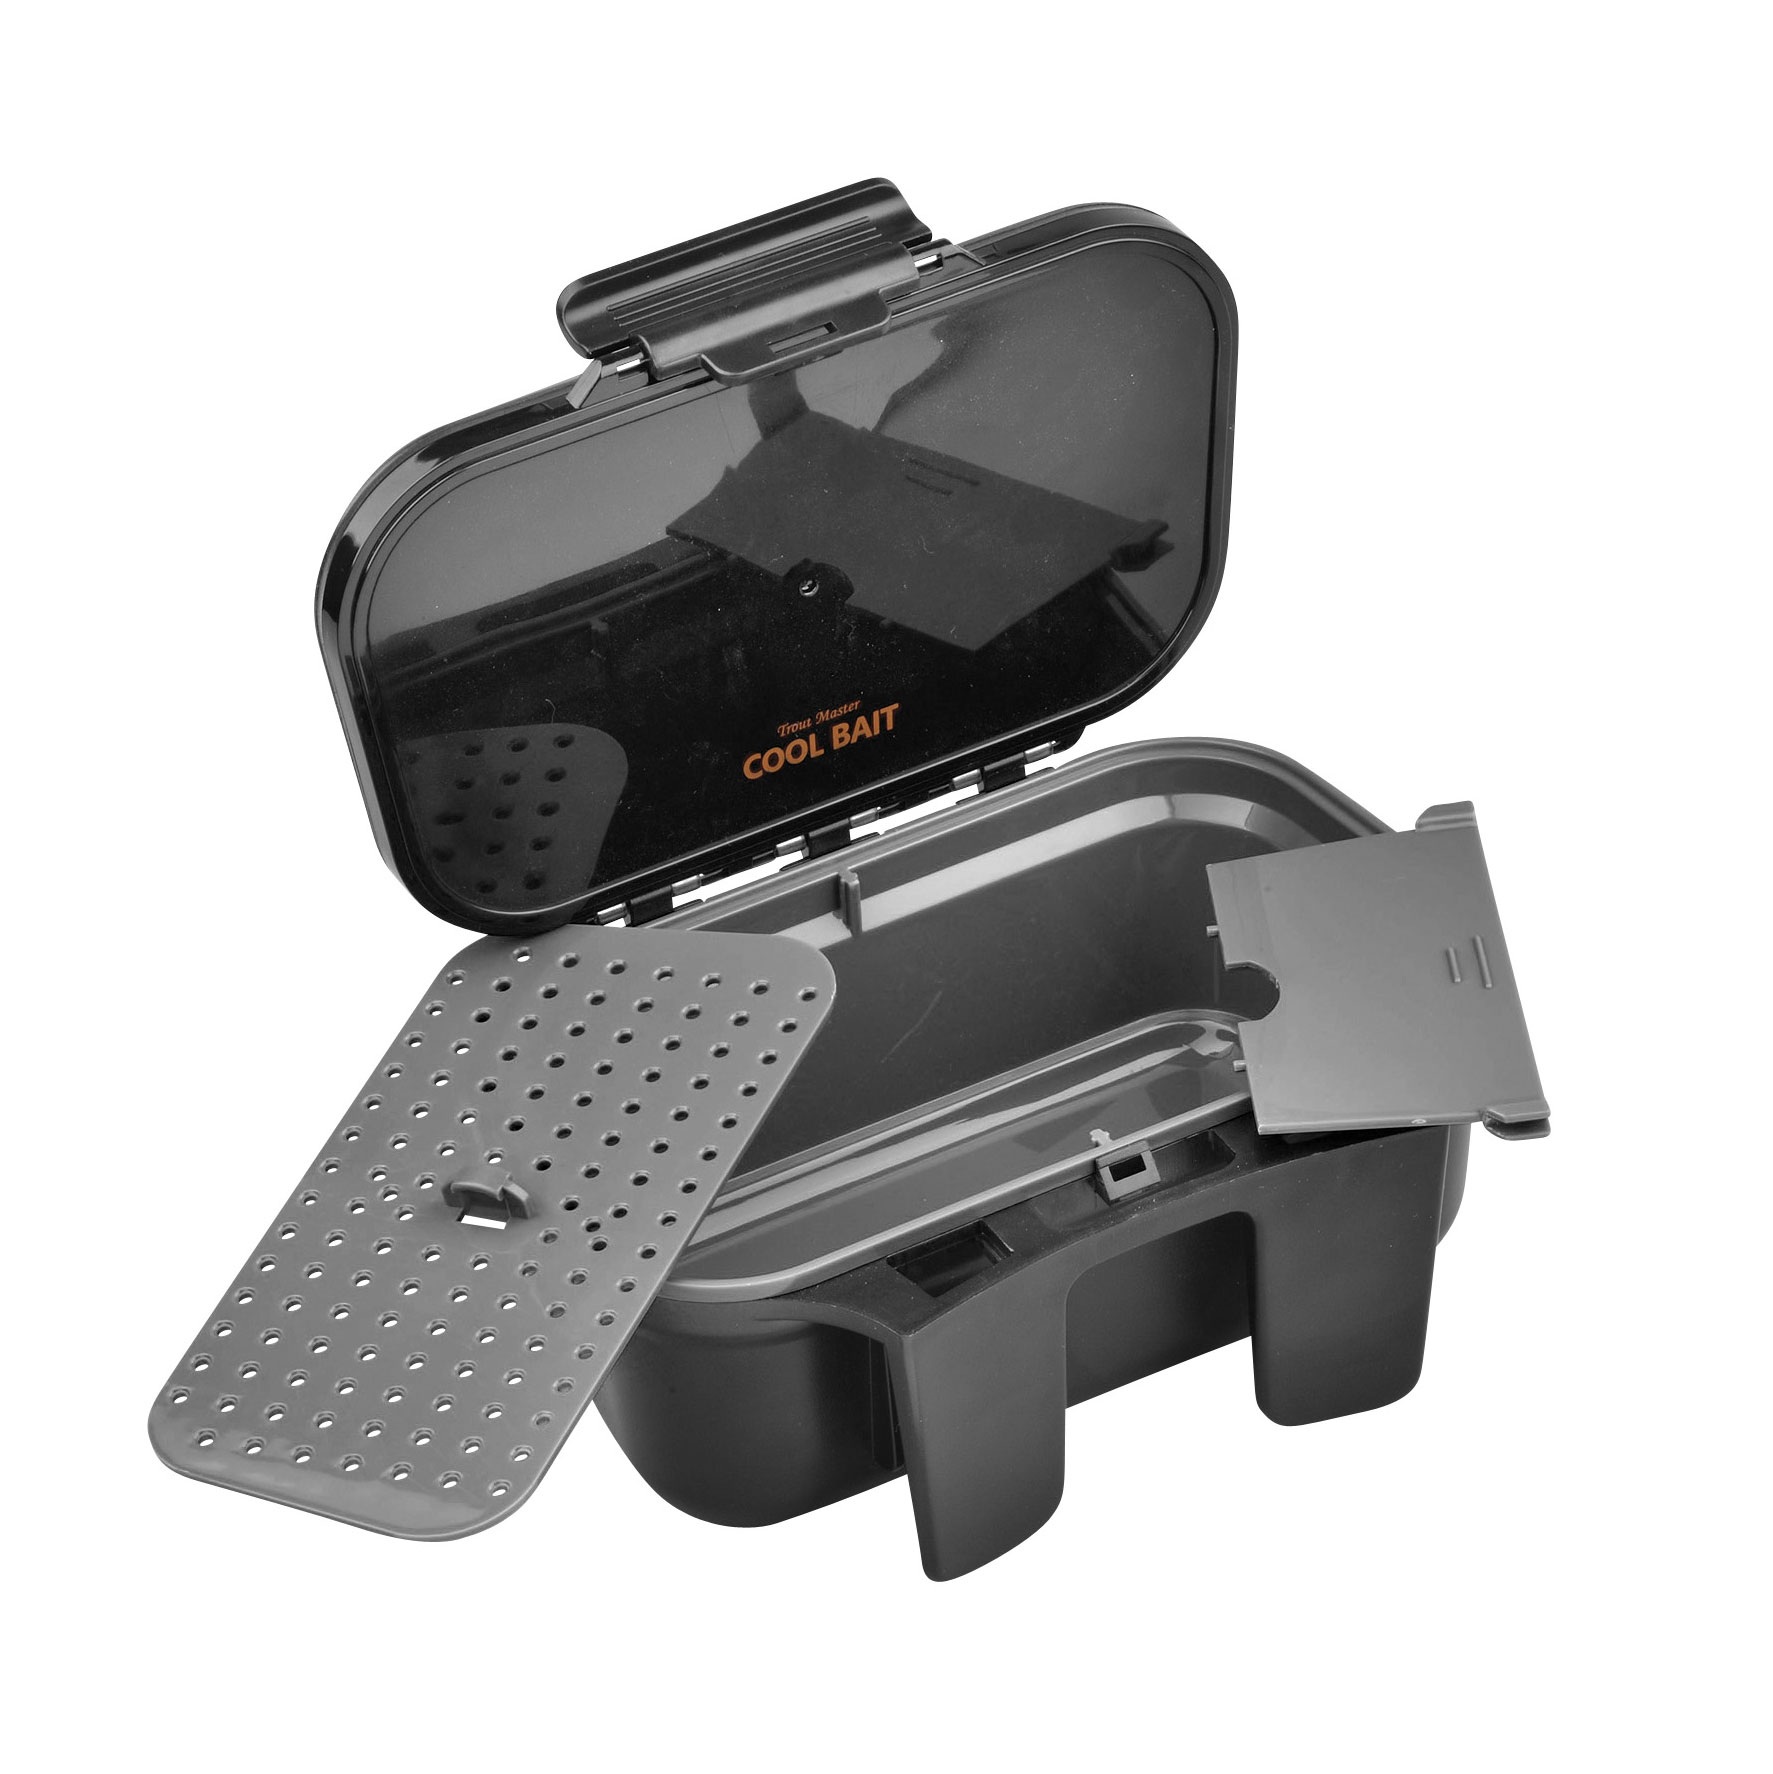 Spro Trout Master cool bait box